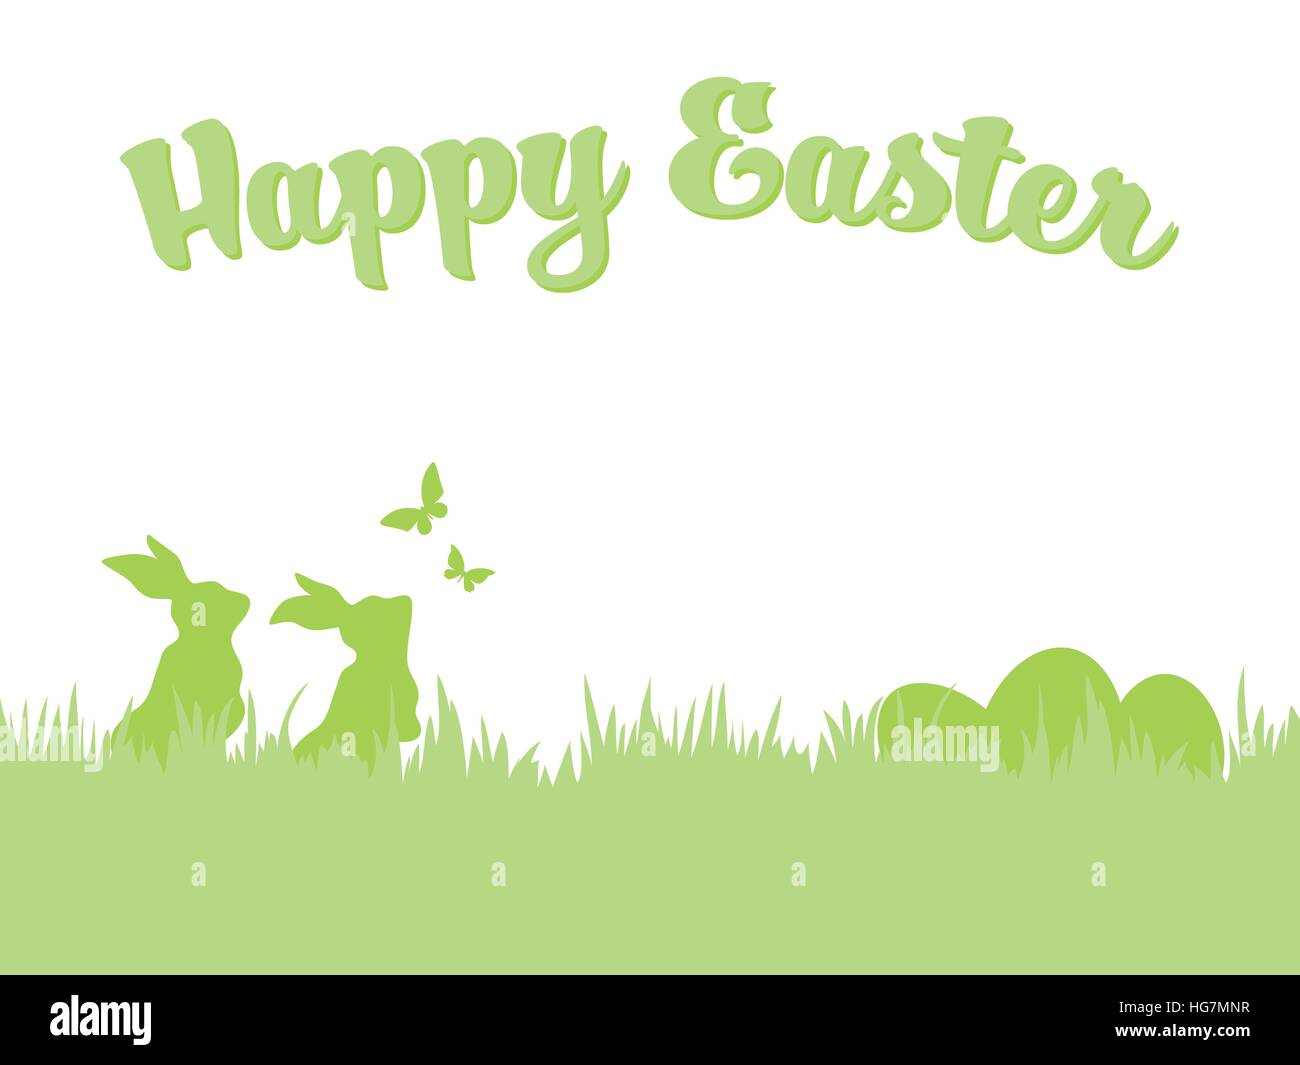 happy easter greeting card template silhouettes of easter bunnies